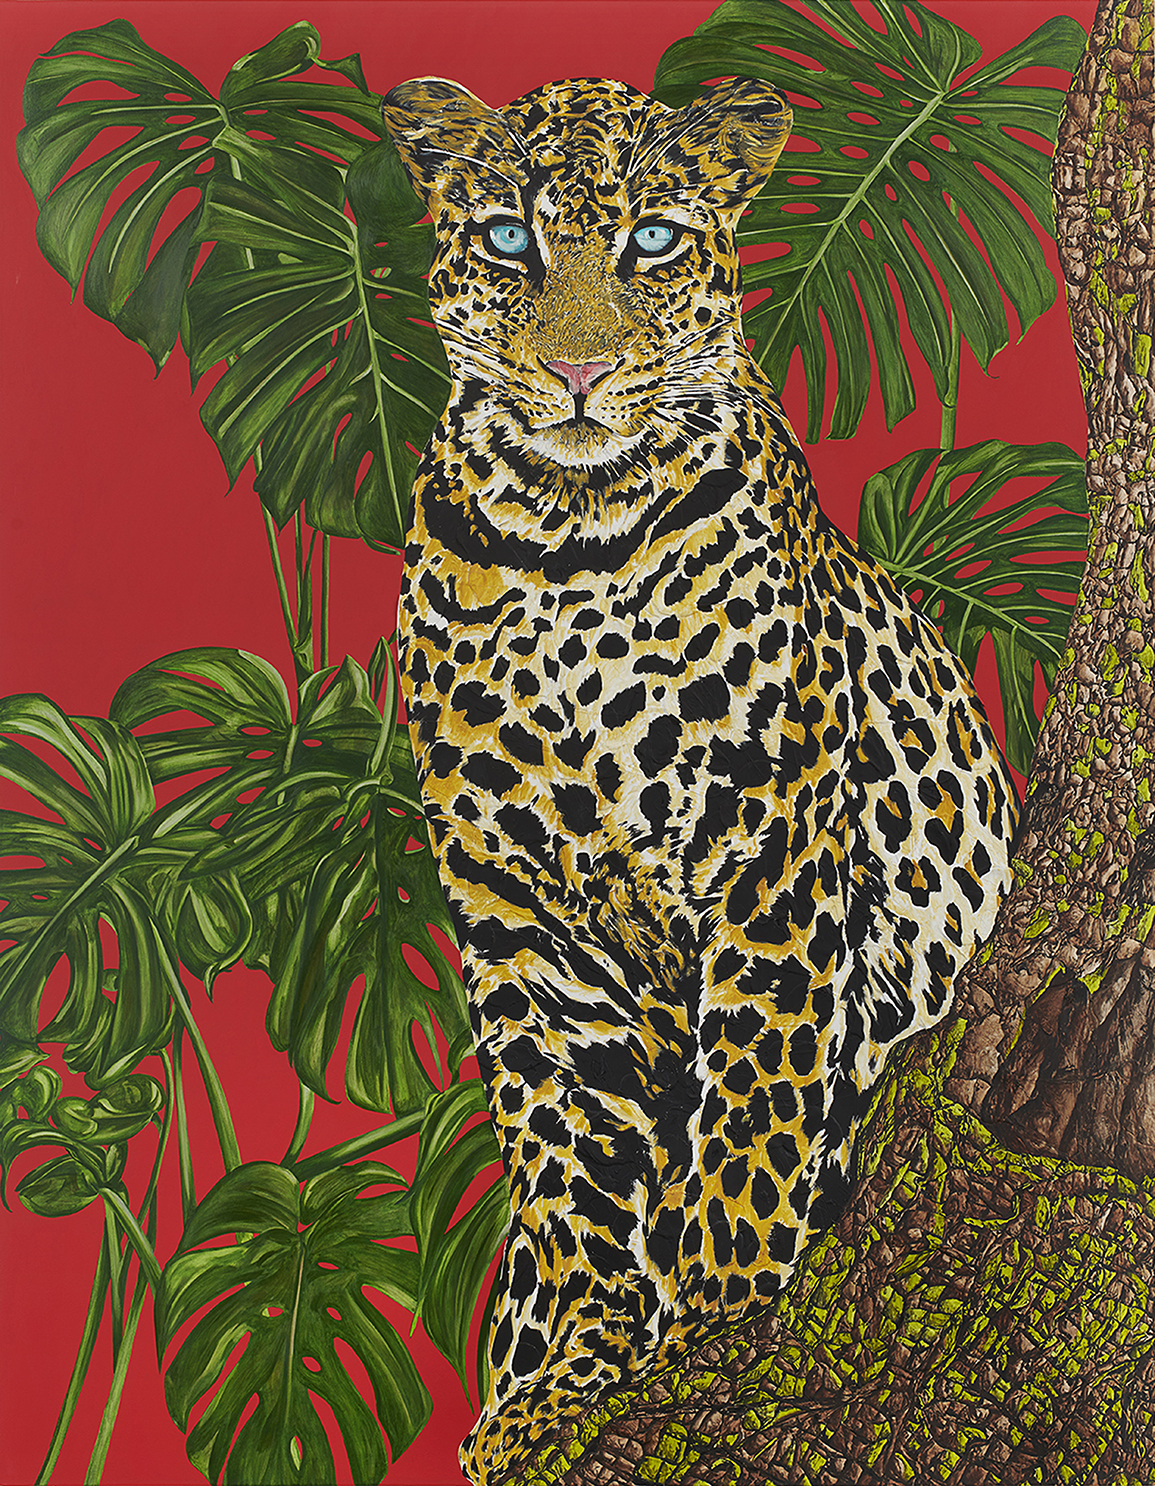 A painting of a leopard amid tropical plants with a red background